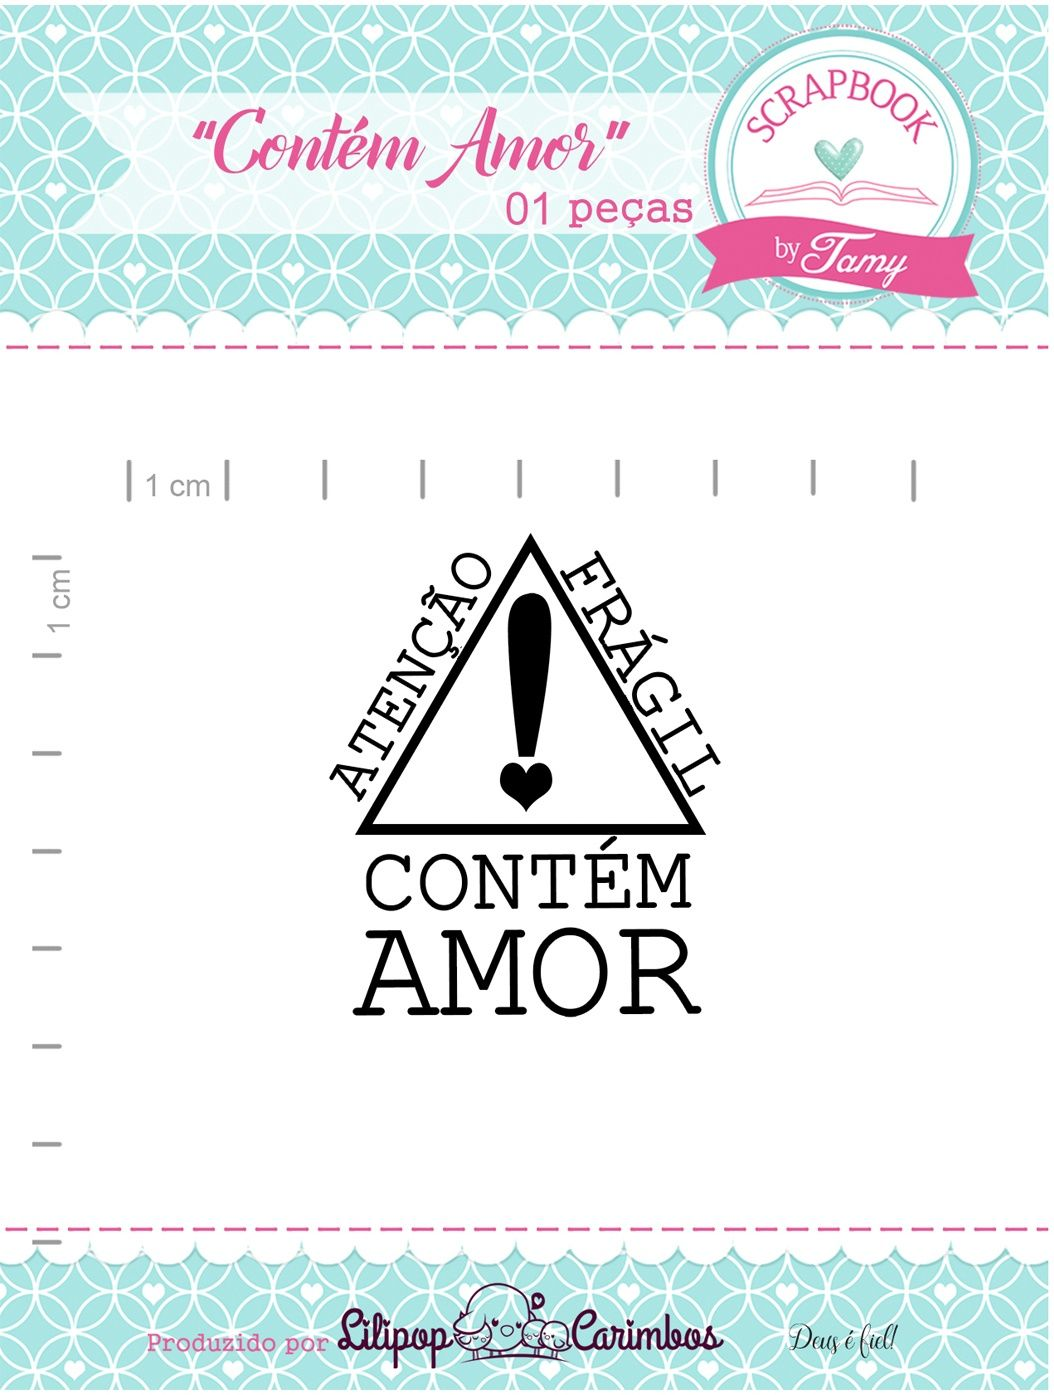 Kit de Carimbos - Contém Amor - Scrapbook by Tamy (OUTLET)